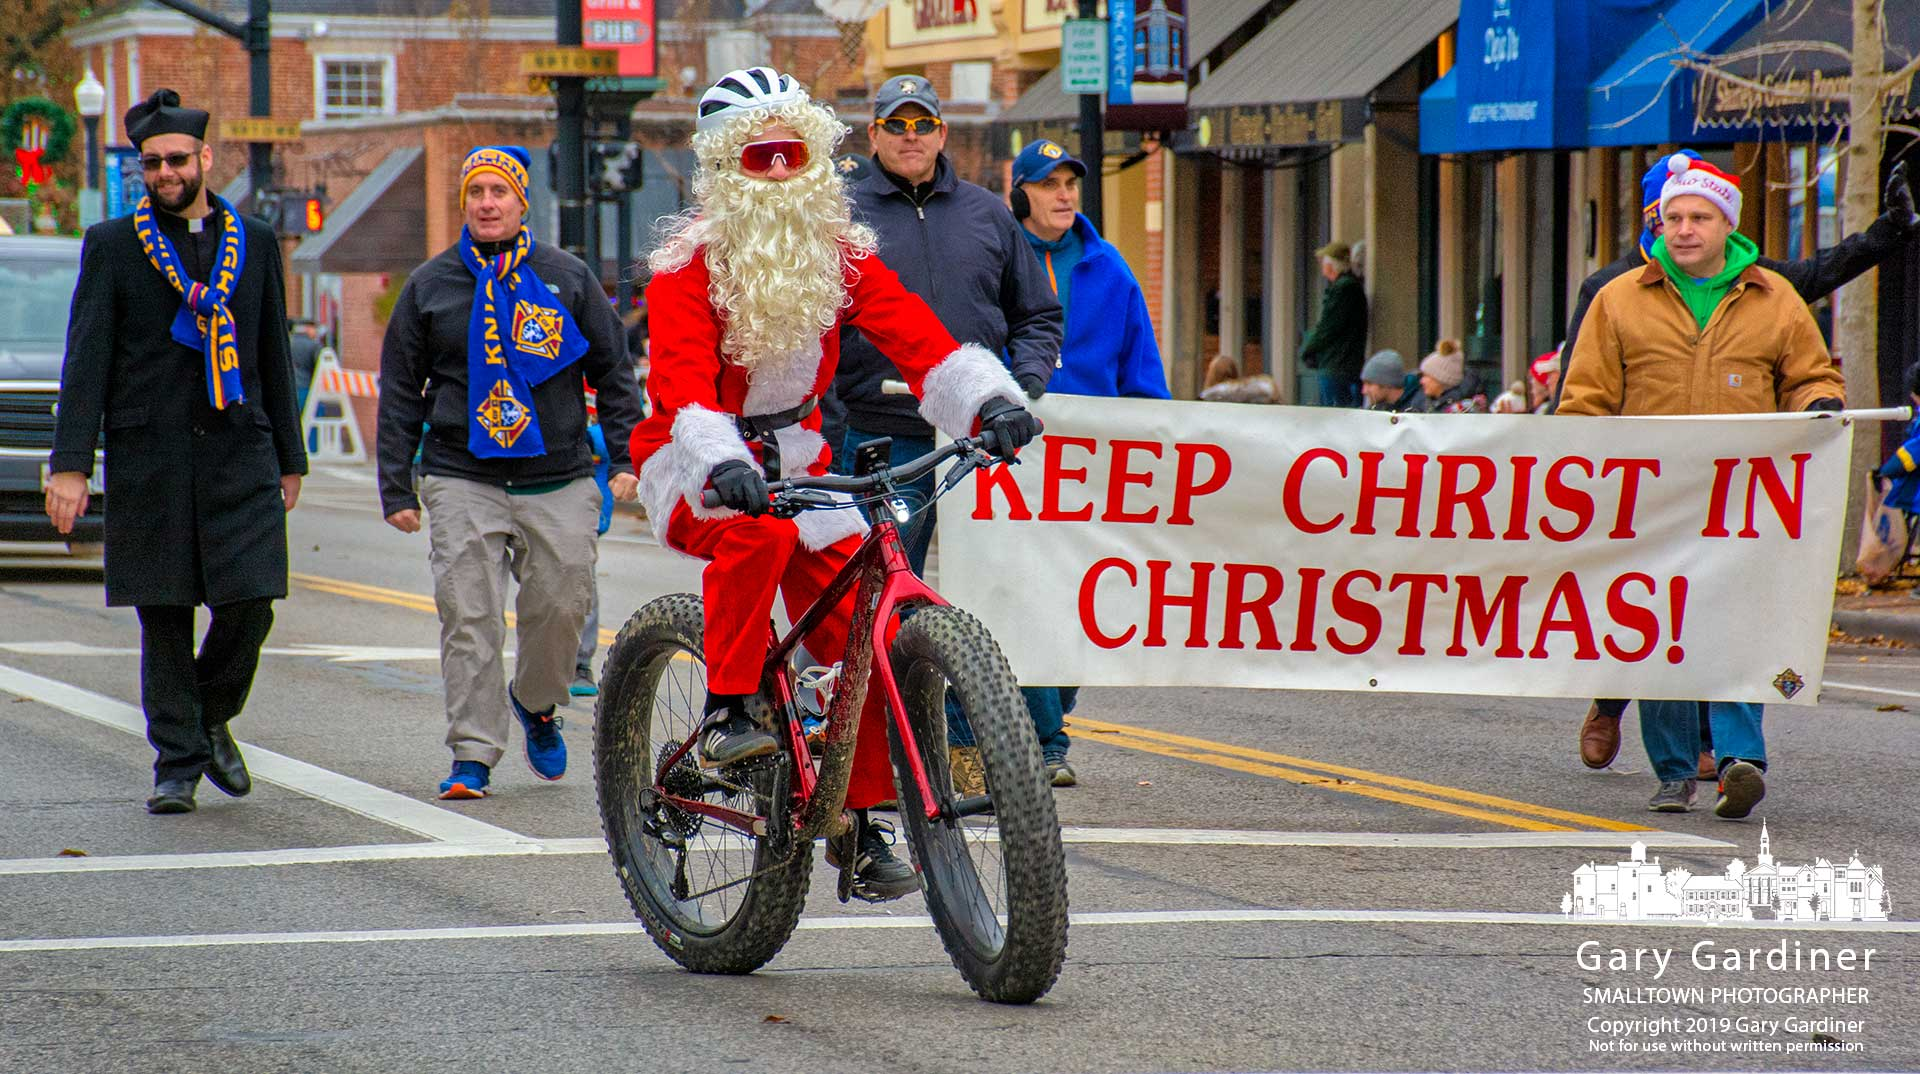 A helmeted Santa Claus rides his big-wheel bike in the Christmas parade leading the way for the Knights of Columbus bearing a banner reminding parade watchers the reason for the season. My Final Photo for Dec. 8, 2019.